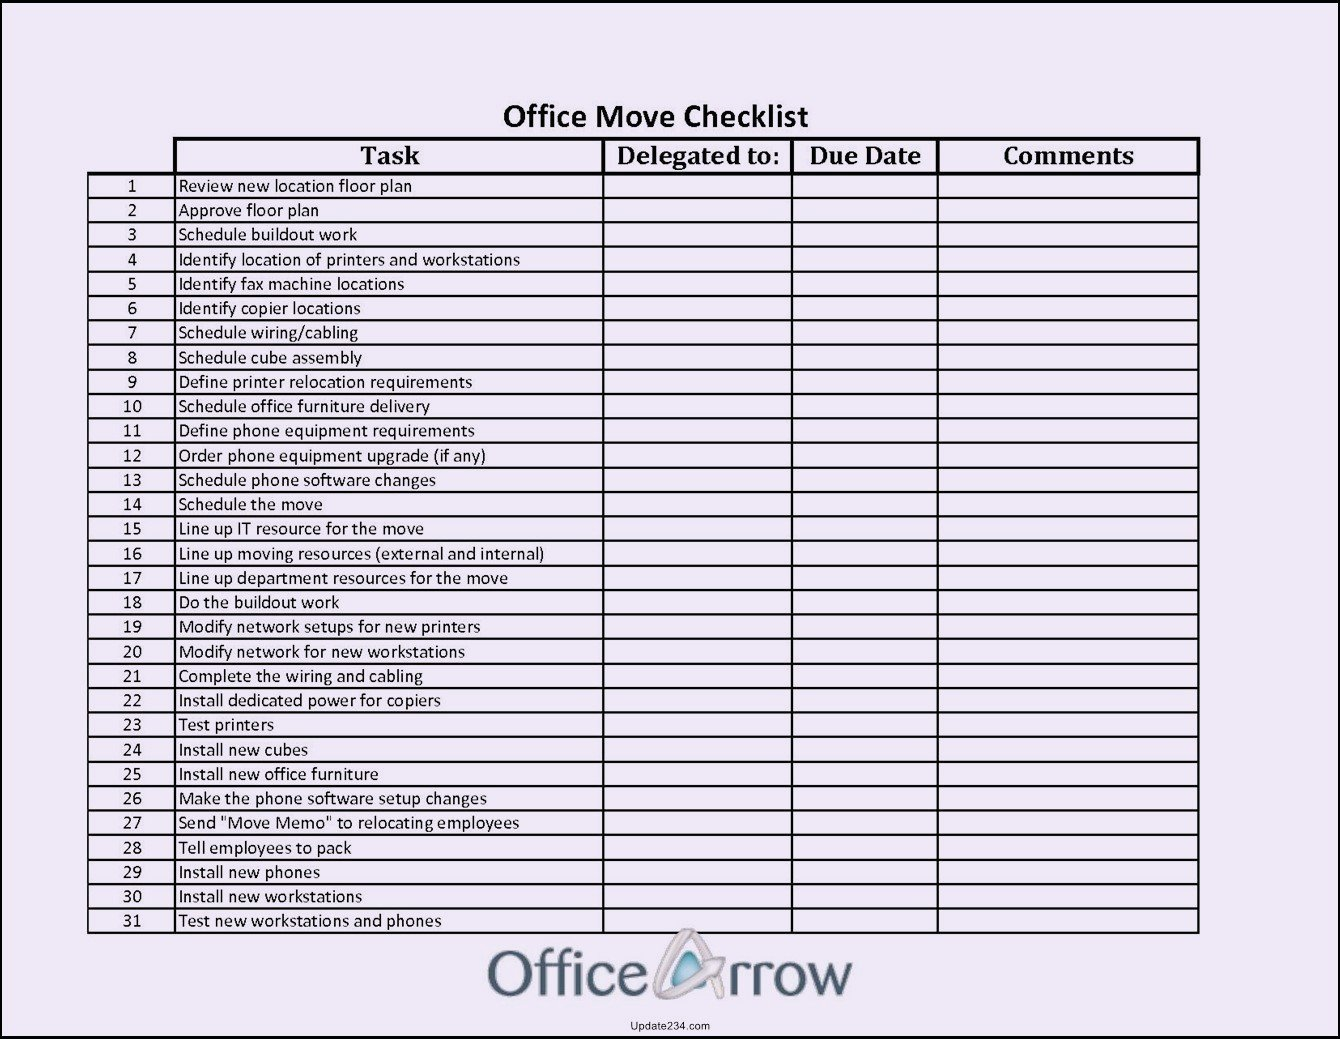 Office Move Checklist Template Elegant Fice Move Checklist Template Excel Template Update234